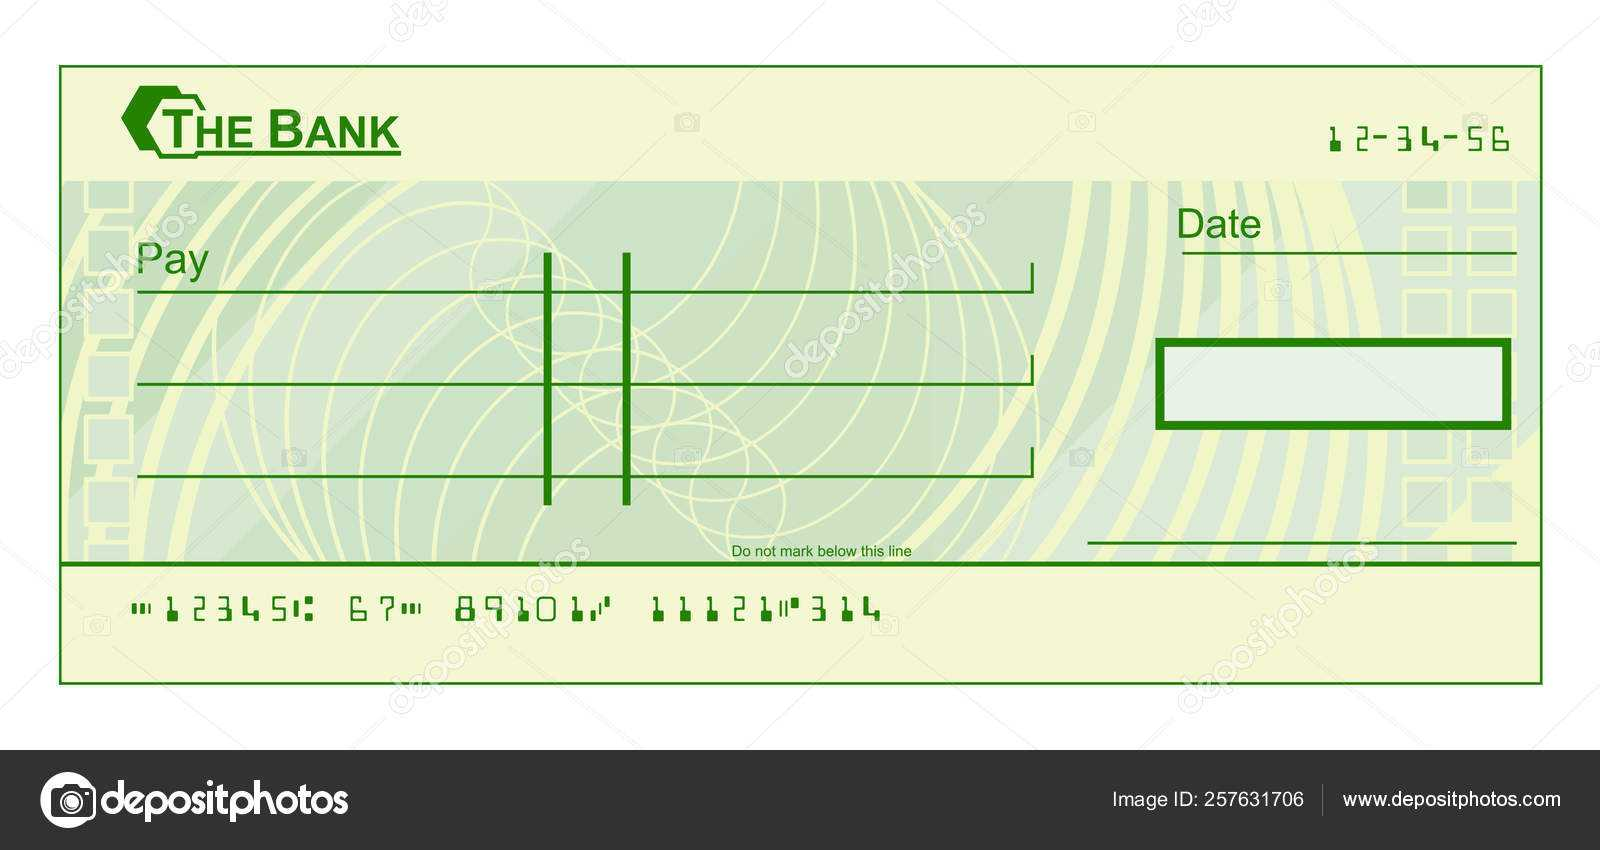 Blank Cheque Graphic — Stock Vector © Krisdog #257631706 Intended For Blank Cheque Template Download Free